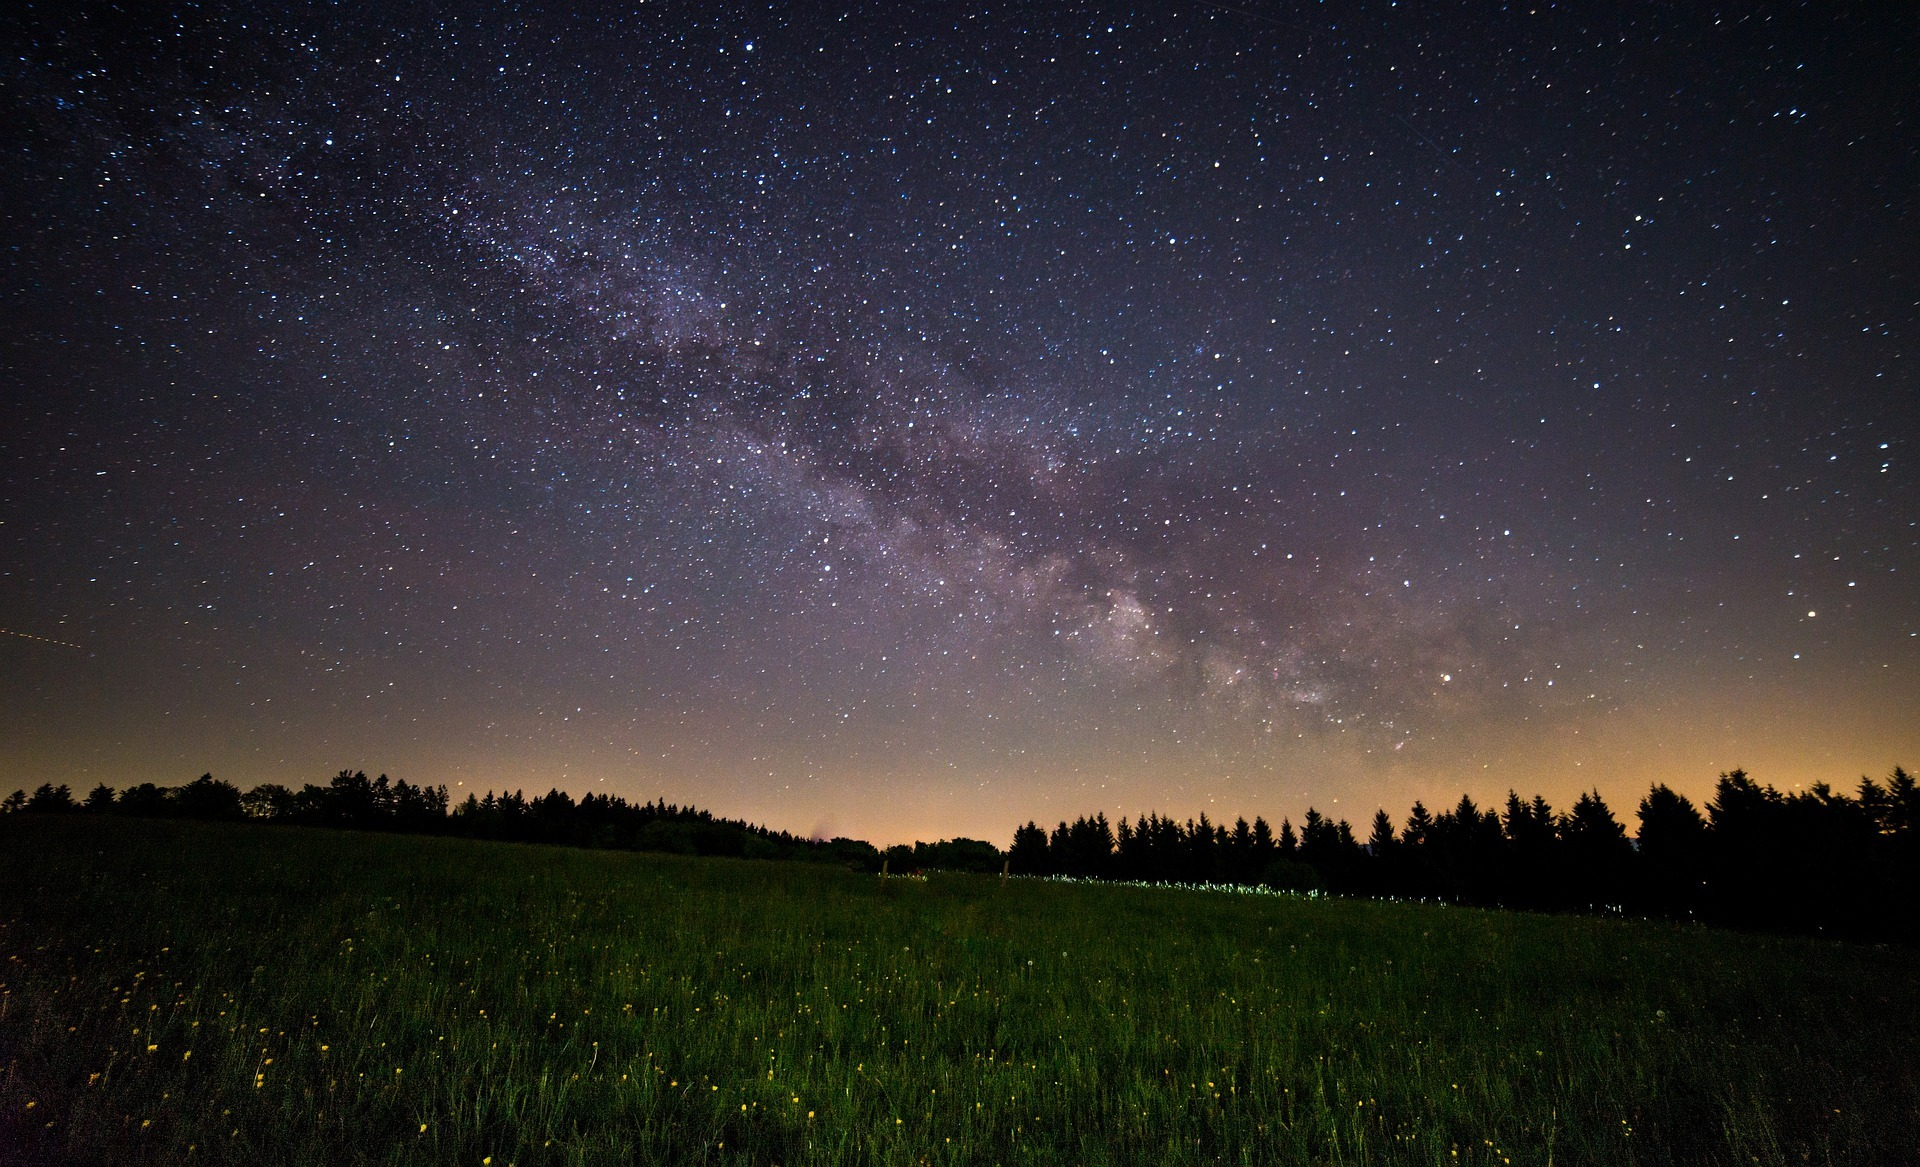 milky-way-above-field